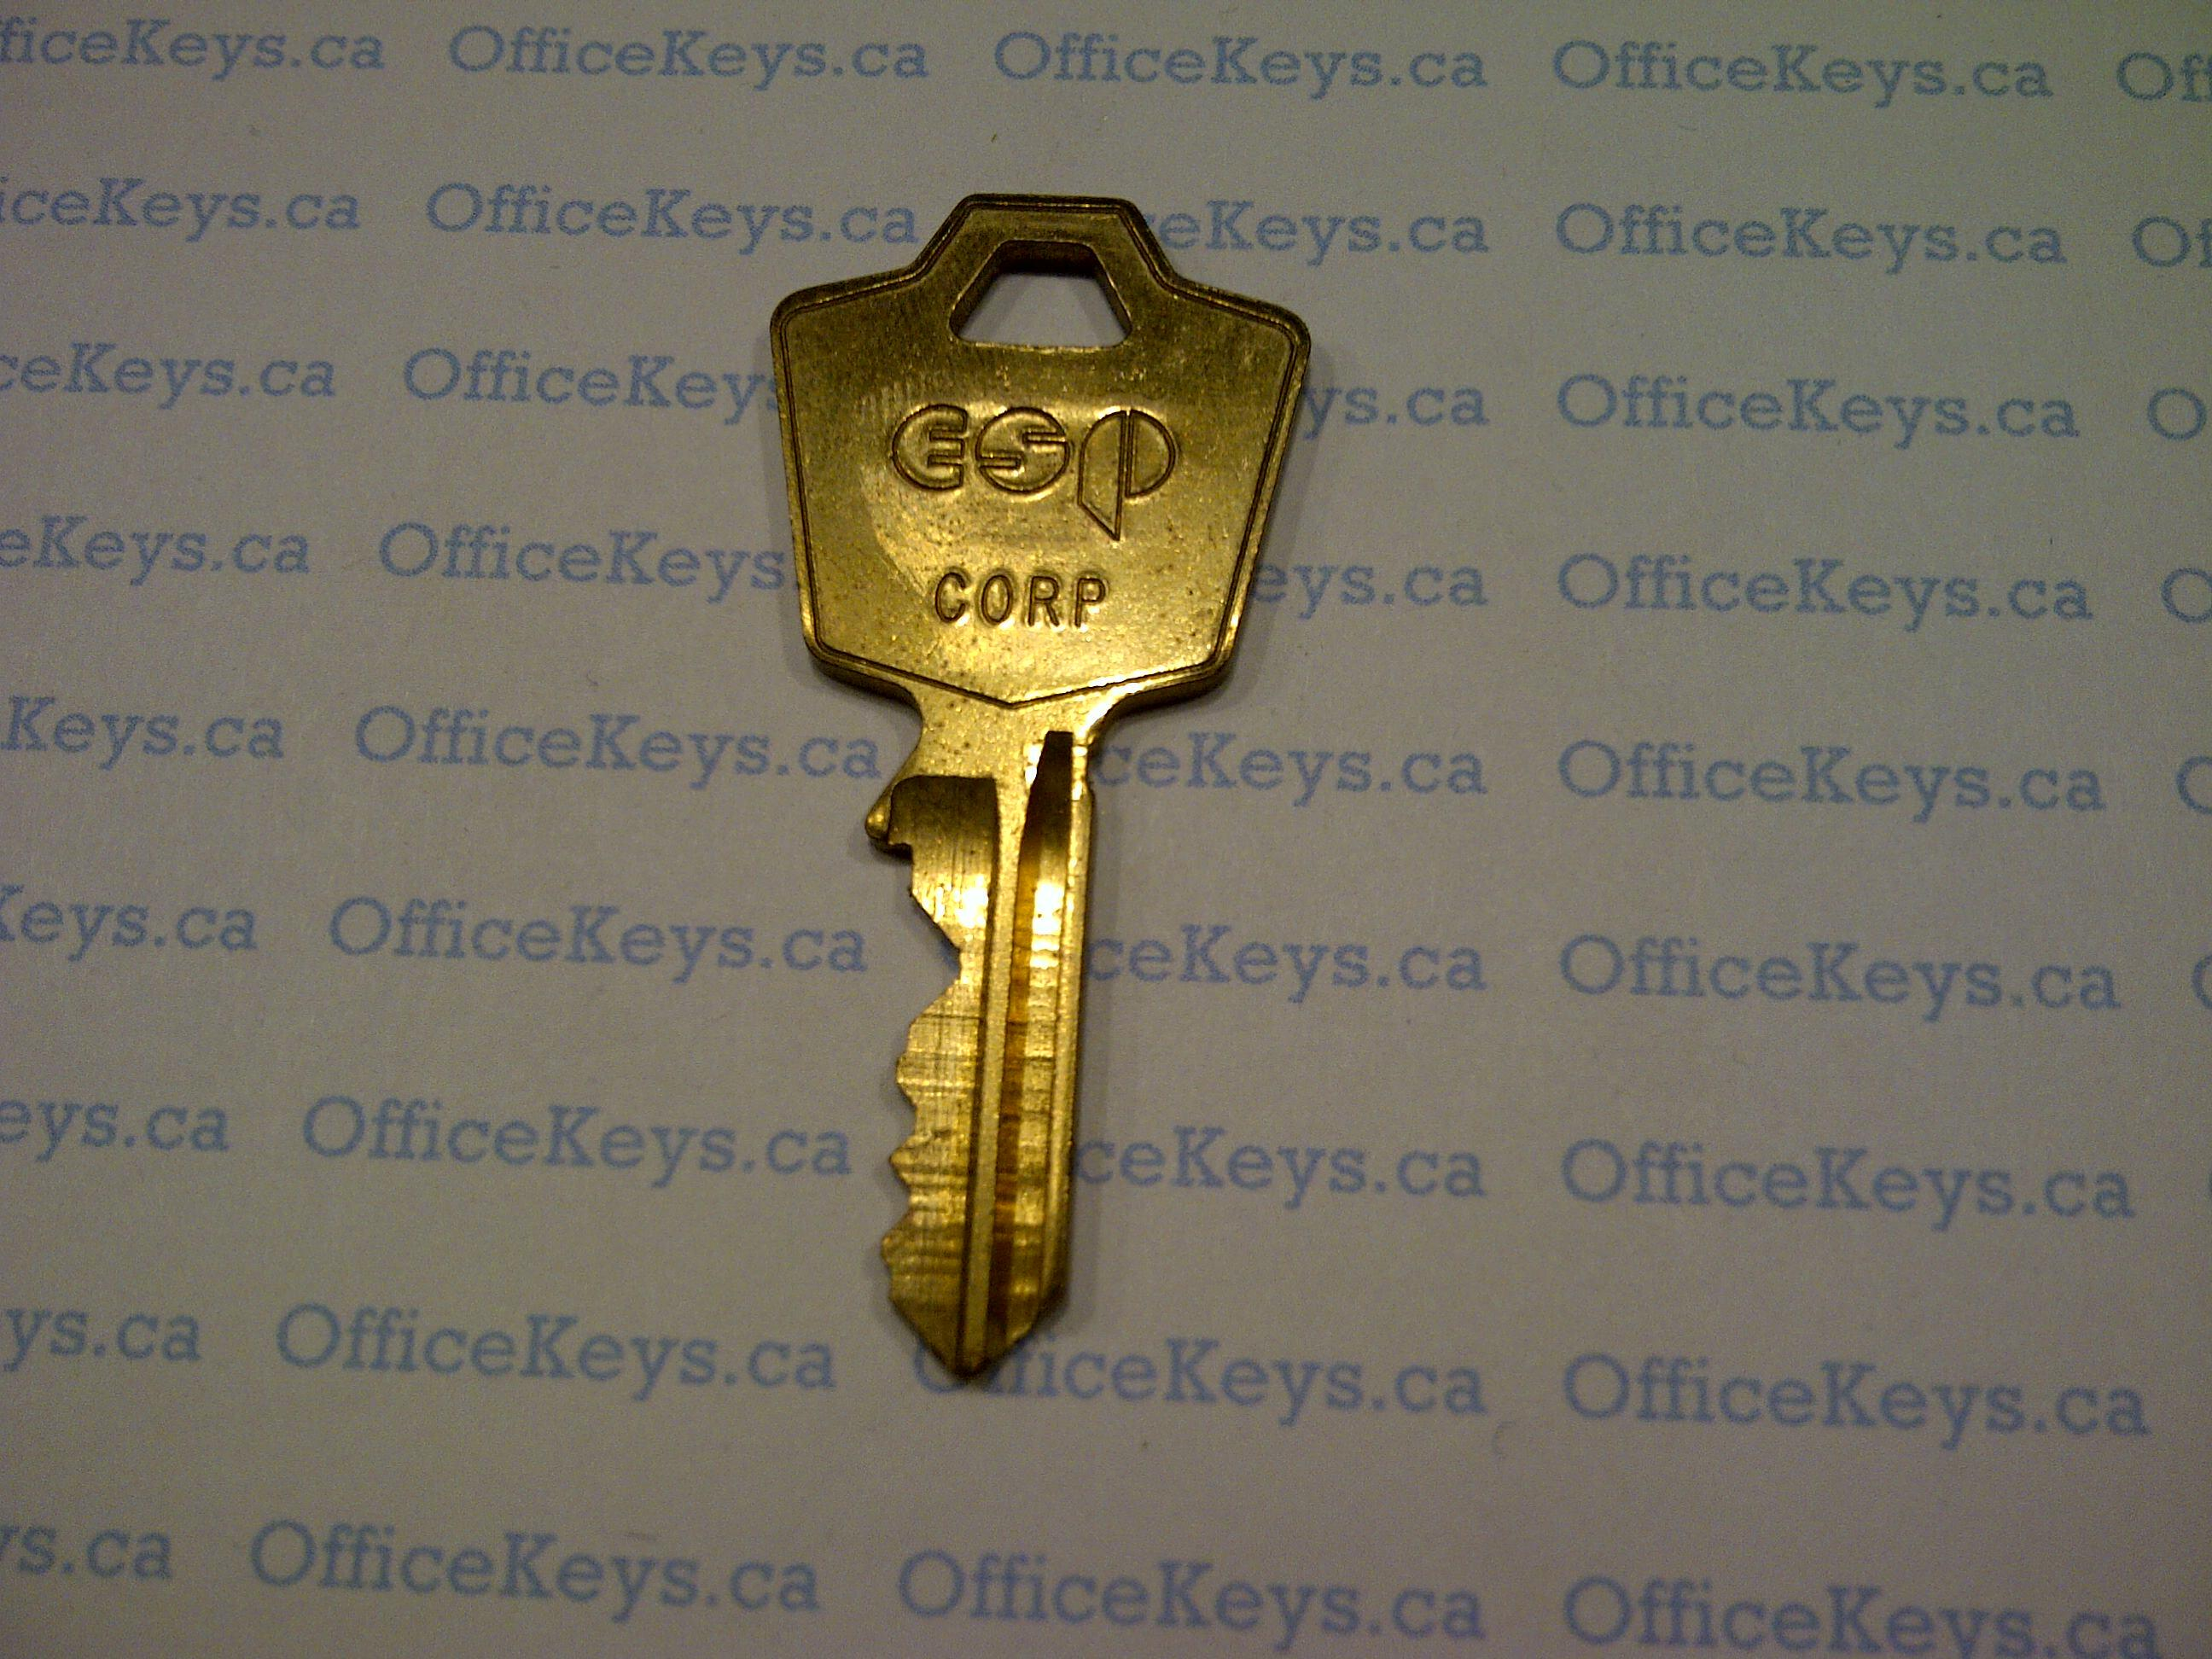 Superb OfficeKeys.ca